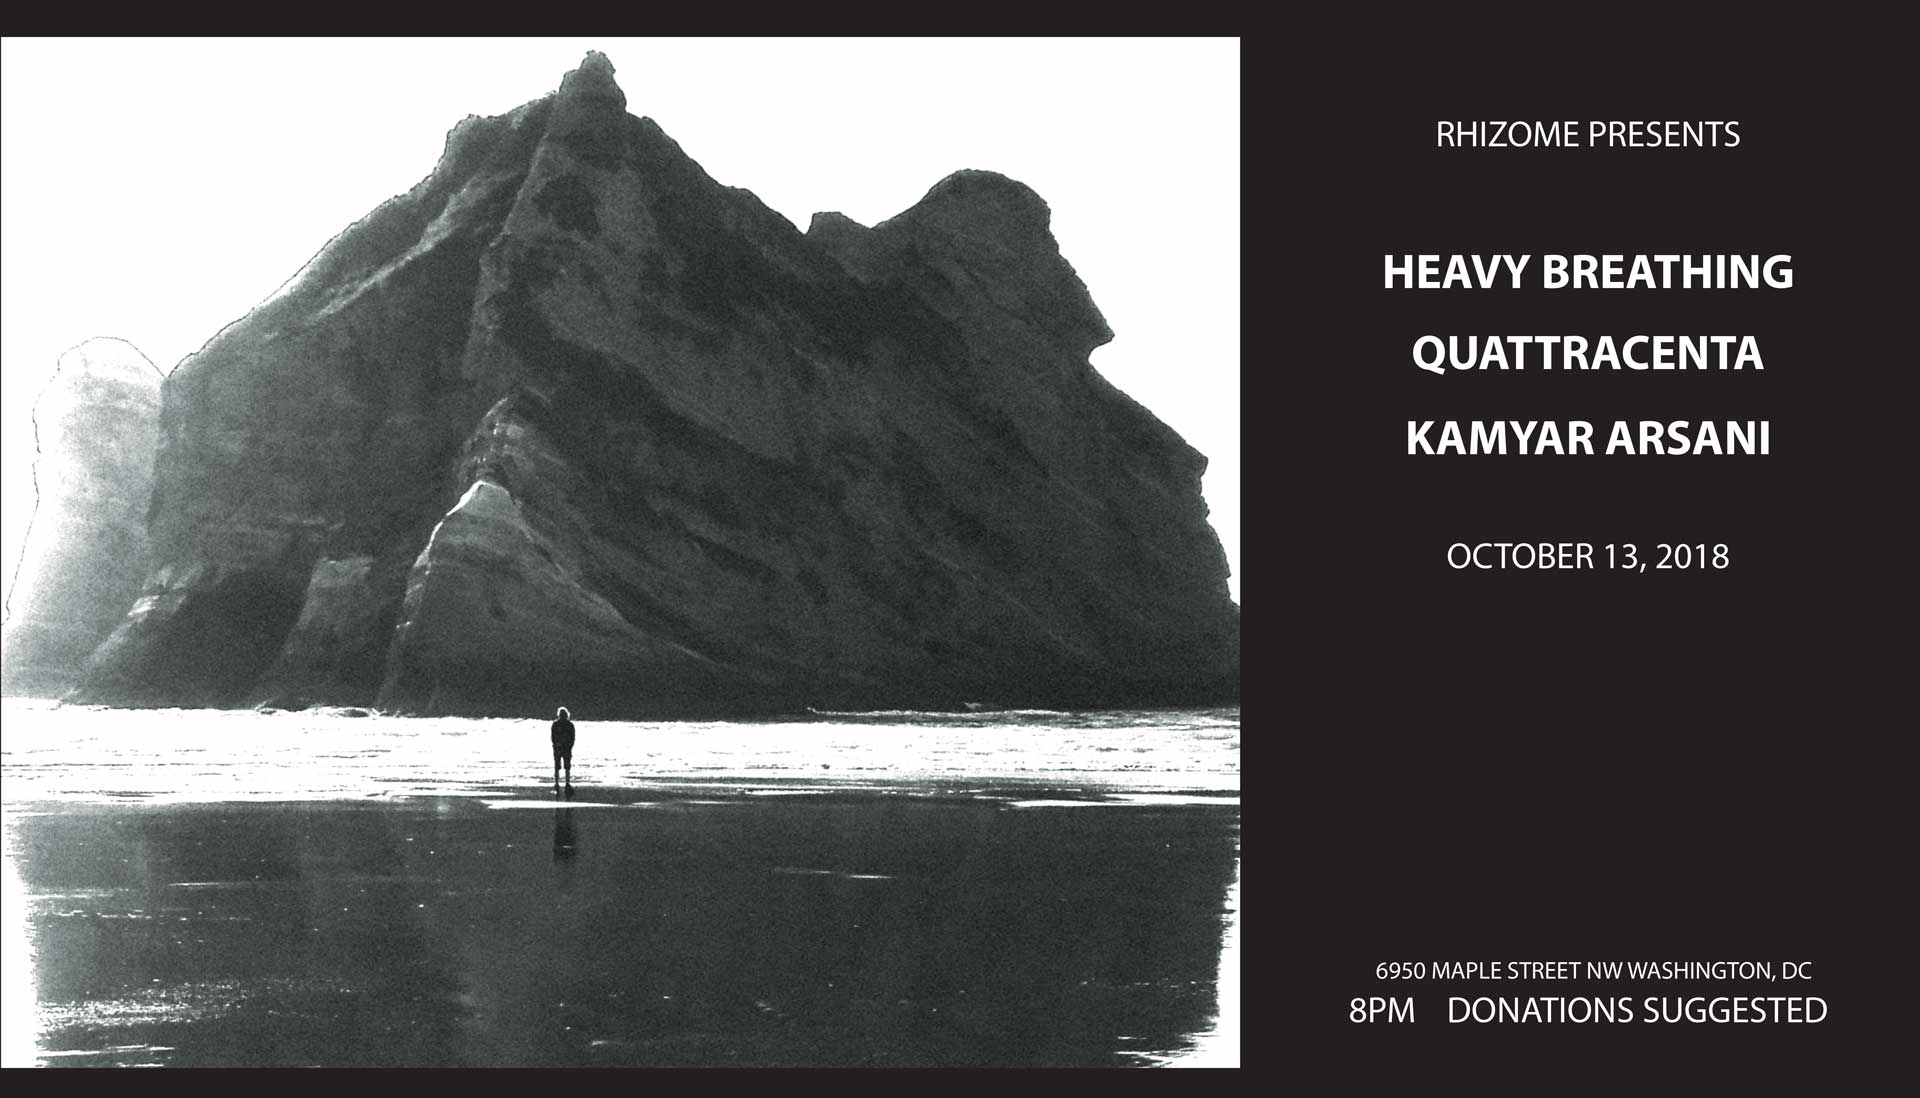 """Saturday october 13th 8PM $10    Heavy Breathing  , from Washington DC, have essentially been around for fifteen years. The core trio: Erick handling the axes, from bass to gits; Jeff, the drummer, who has now moved center stage; and Amanda, playing synths and organs made 6 records as the Apes, with three different vocalists; they then solved their singer problems by changing their name to Heavy Breathing and using found sounds from the World Wide Web in lieu of the old, clichèd human singer. Longevity in DIY music, artistic evolution, and prolific output: If you're up for adoption, this is the family you want.   **   Quattracenta  's sound is dark and atmospheric. Dispirited emotion combines with melody and power to create haunting songs that are eerie, surreal and smart.   Dark, dulcet tones creak from the belly of her guitar, while Sarah Matas sings at the edge of her breath, using as much air as inflection. Her lyrics vacillate between intimate snapshots and panoramic vistas that lament love, life and loss.  Beneath this landscape, a driving bass pushes forward to create a sinister tension. Pierced by brightness of the lead guitar and steadied by the notably tonal percussion of the drums, each instrument stands alone in its unique contribution yet combine together to form a lush, velvet darkness.  Their debut EP with J Robbins of Magpie Cage Studios, was released on 20/20 Records and Tapes and is distributed through Dischord Records.  **    Kamyar Arsani   is a multi-instrumentalist, singer and songwriter born and raised in Tehran, Iran. At young age, Kamyar began daf (Persian frame drum) lessons with Master Bijan Kamkar. Kamyar also spent time playing meditative rhythms for hours at a time for Sufis. Kamyar has spent over 20 years performing and researching the daf and its roots. Kamyar's songs and performances are very much inspired by the people of Iran and their history of struggle and protest. He produced his first solo album in 2015, entitled """"No Freedom.K"""